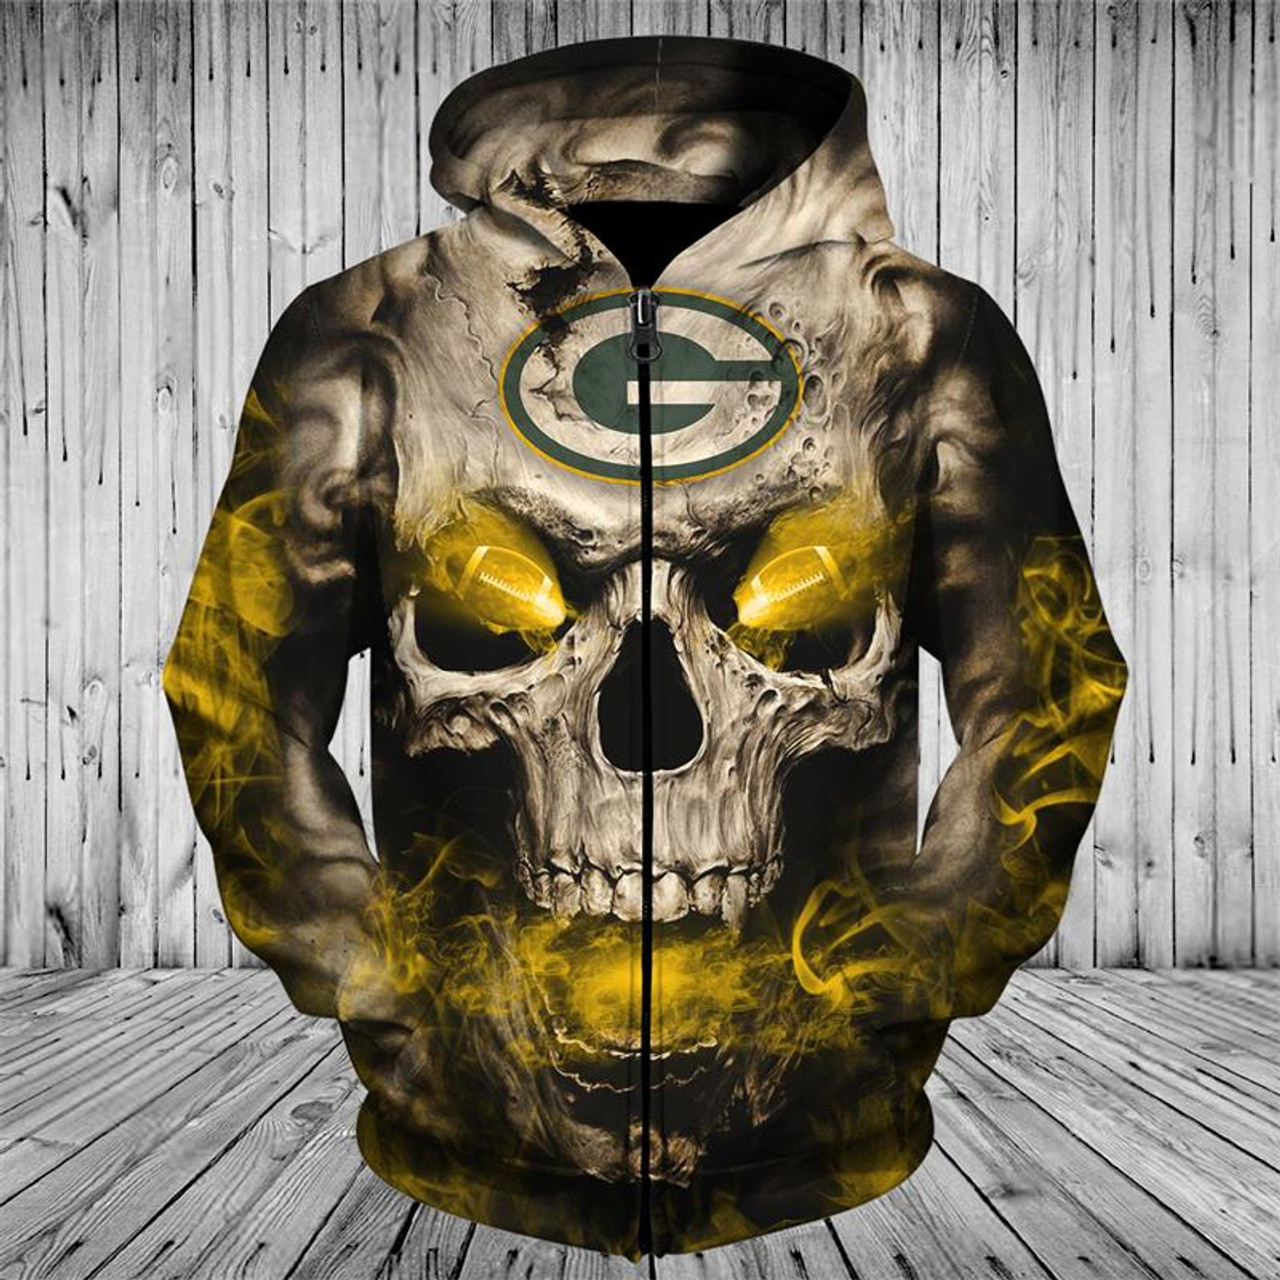 the latest b0e32 a5352 **(OFFICIAL-N.F.L.GREEN-BAY-PACKERS-LOGO-ZIPPERED-HOODIES/3D-NEON-SKULL &  GREEN-BAY-PACKERS-BLAZING-FOOTBALL,ON-FIRE-IN-SKULLS-EYES,PREMIUM-3D-CUSTOM-...